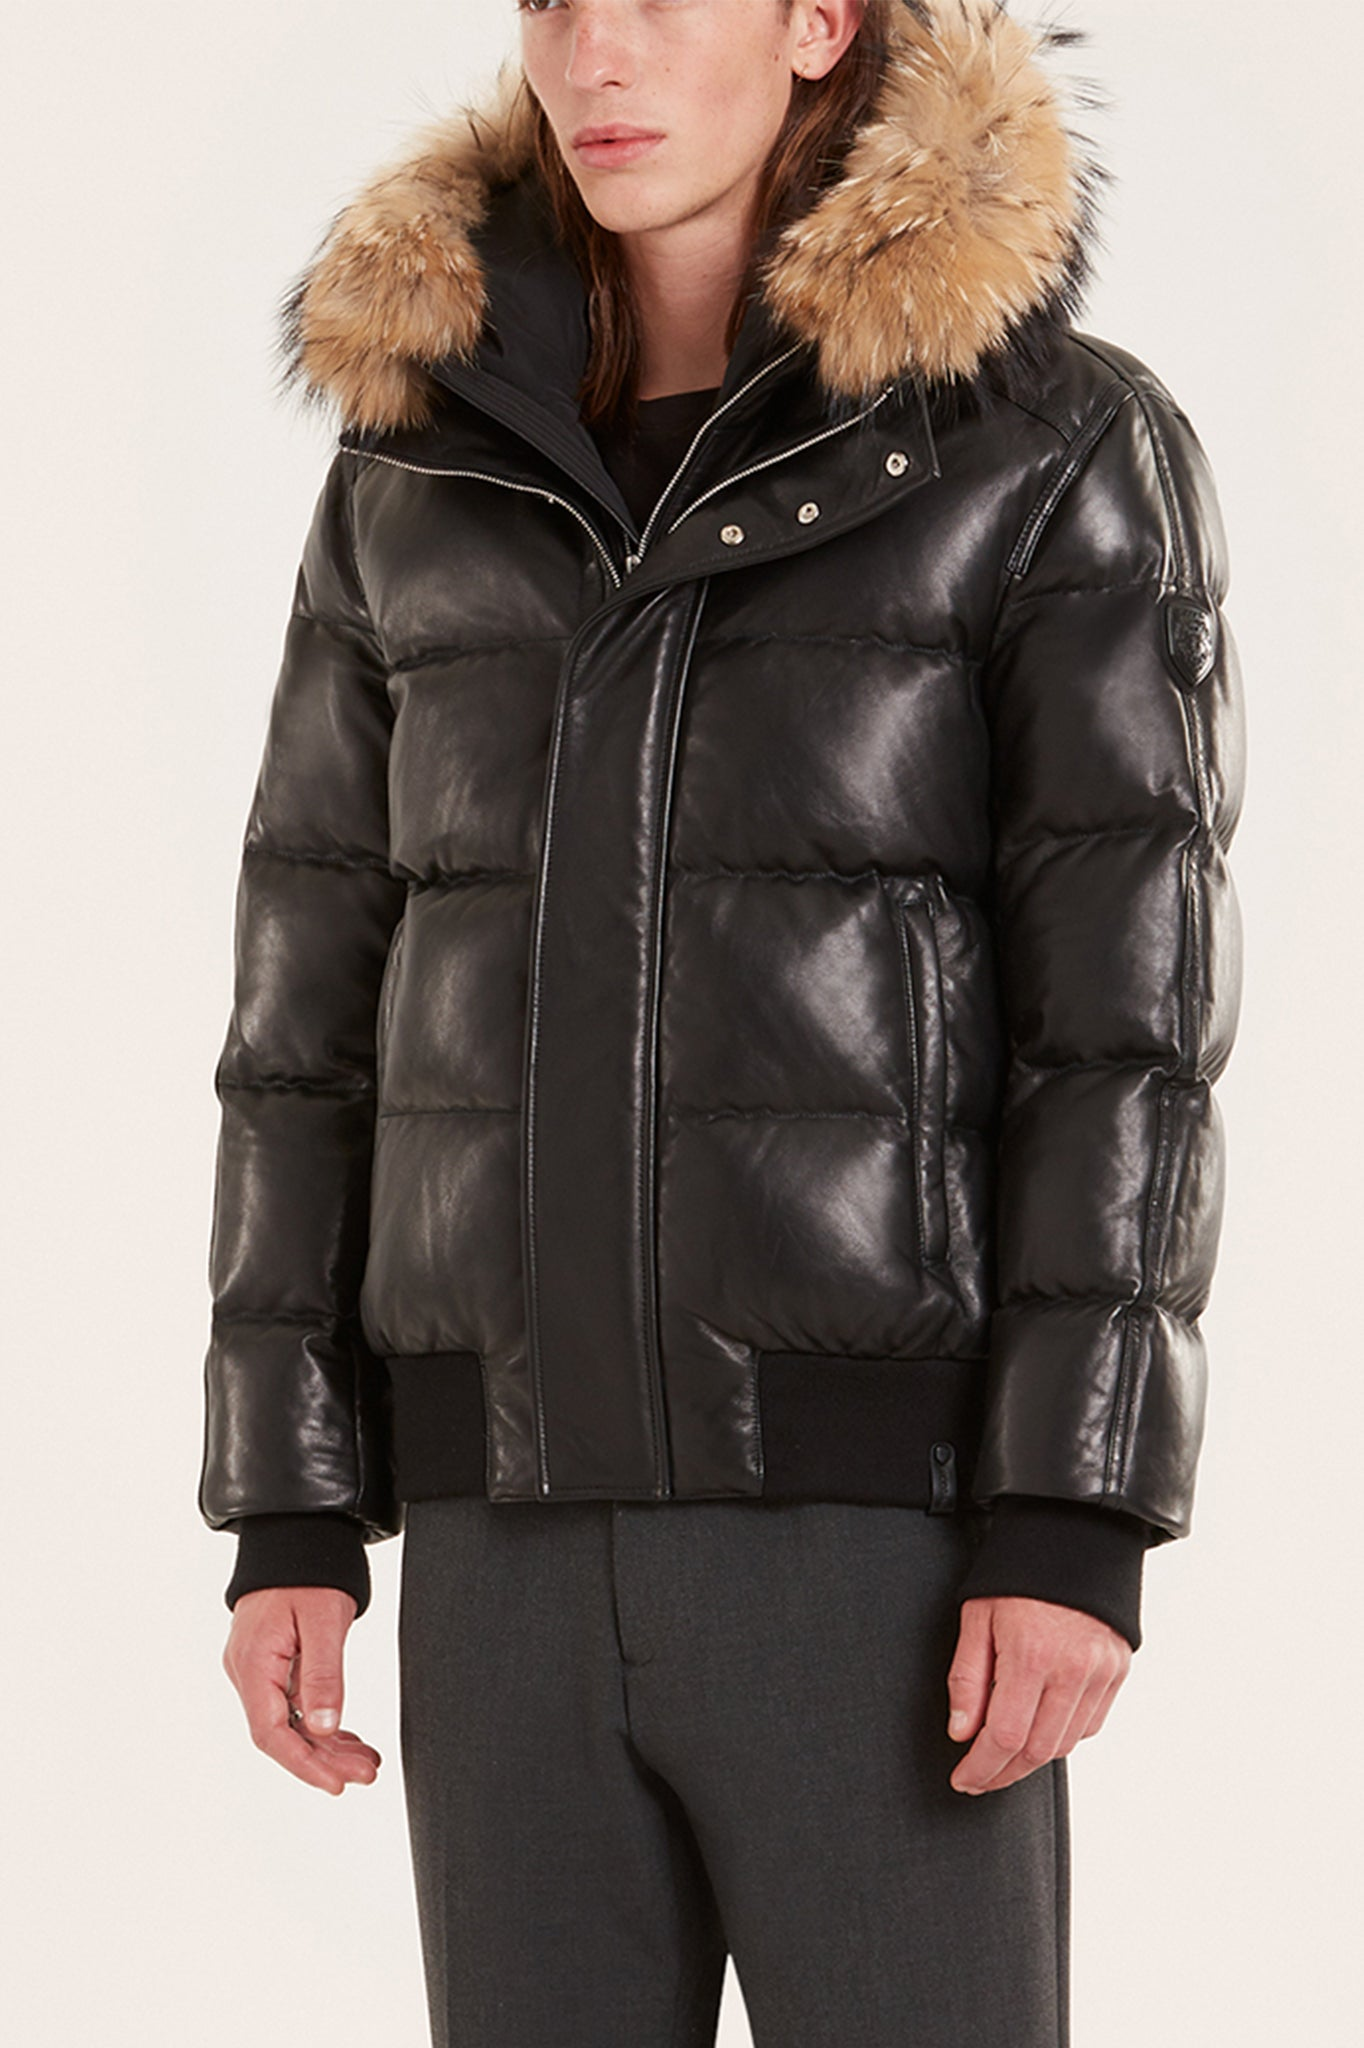 Rudsak Black Quilted Puffer Leather Down Coat